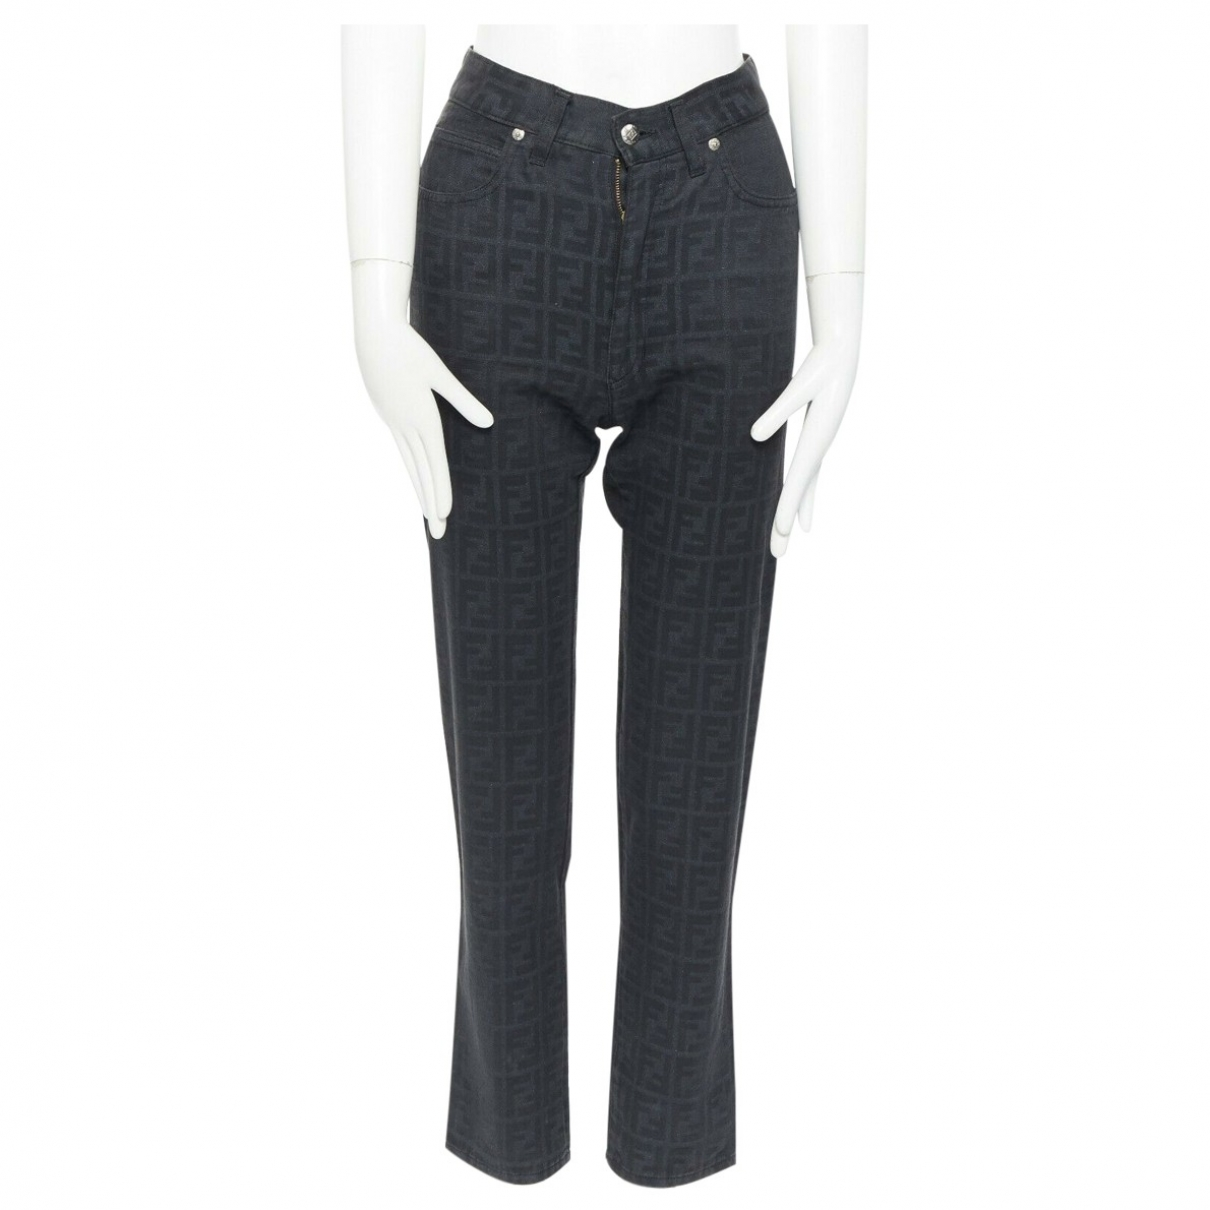 Fendi \N Black Cotton Jeans for Women 41 FR